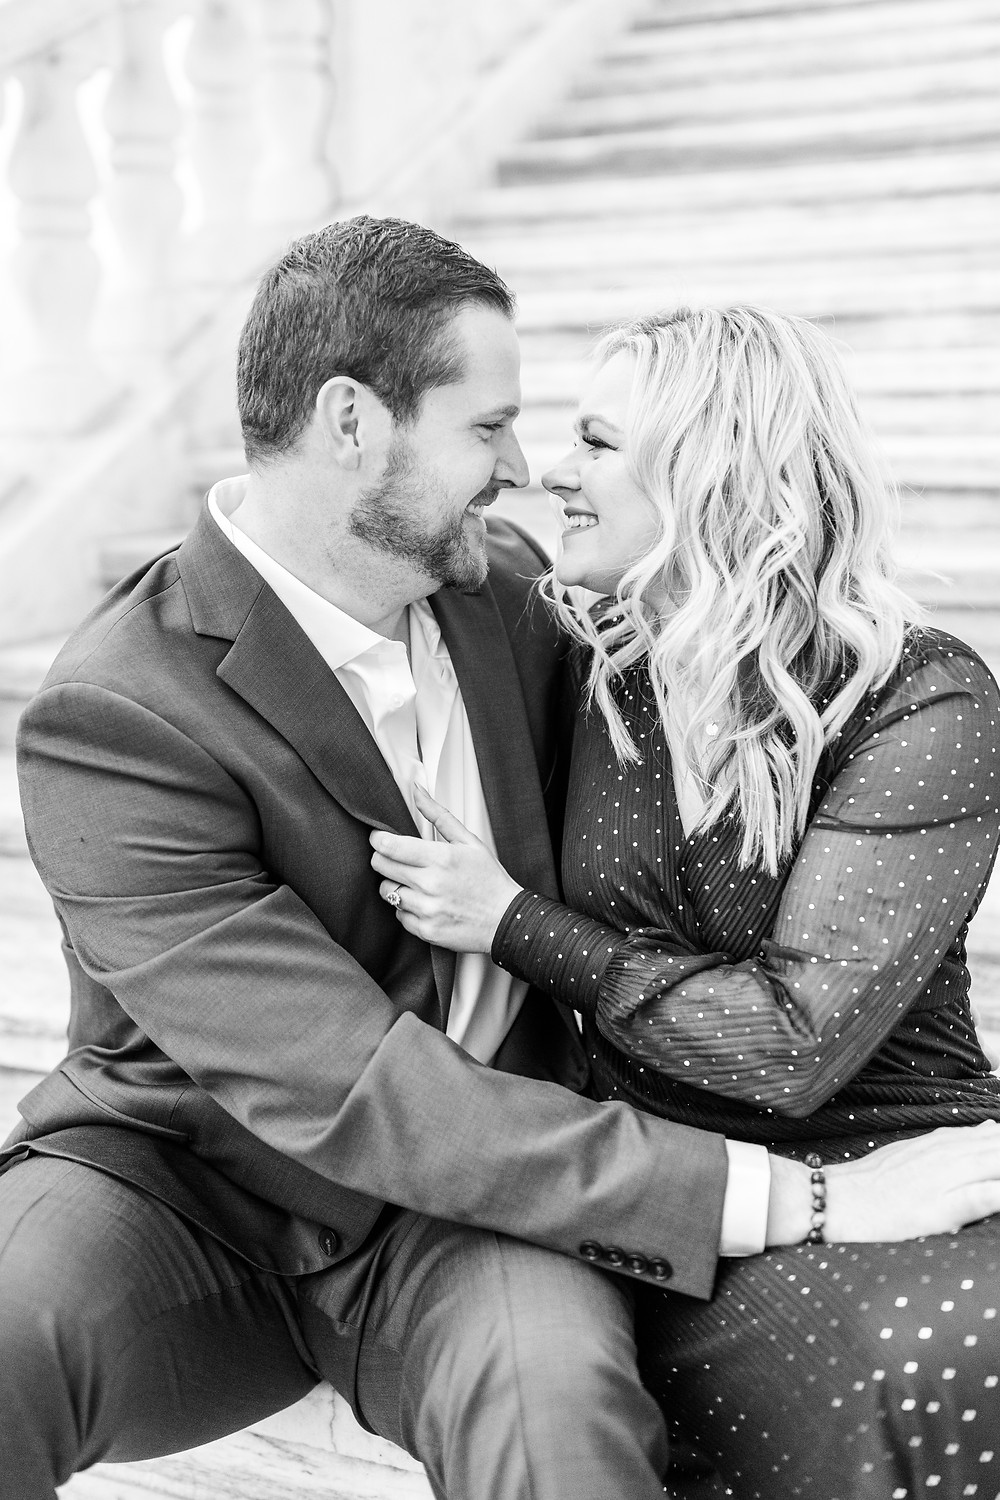 Josh and Andrea wedding photography husband and wife photographer team michigan engagement session photo shoot fiance detroit sitting smiling downtown